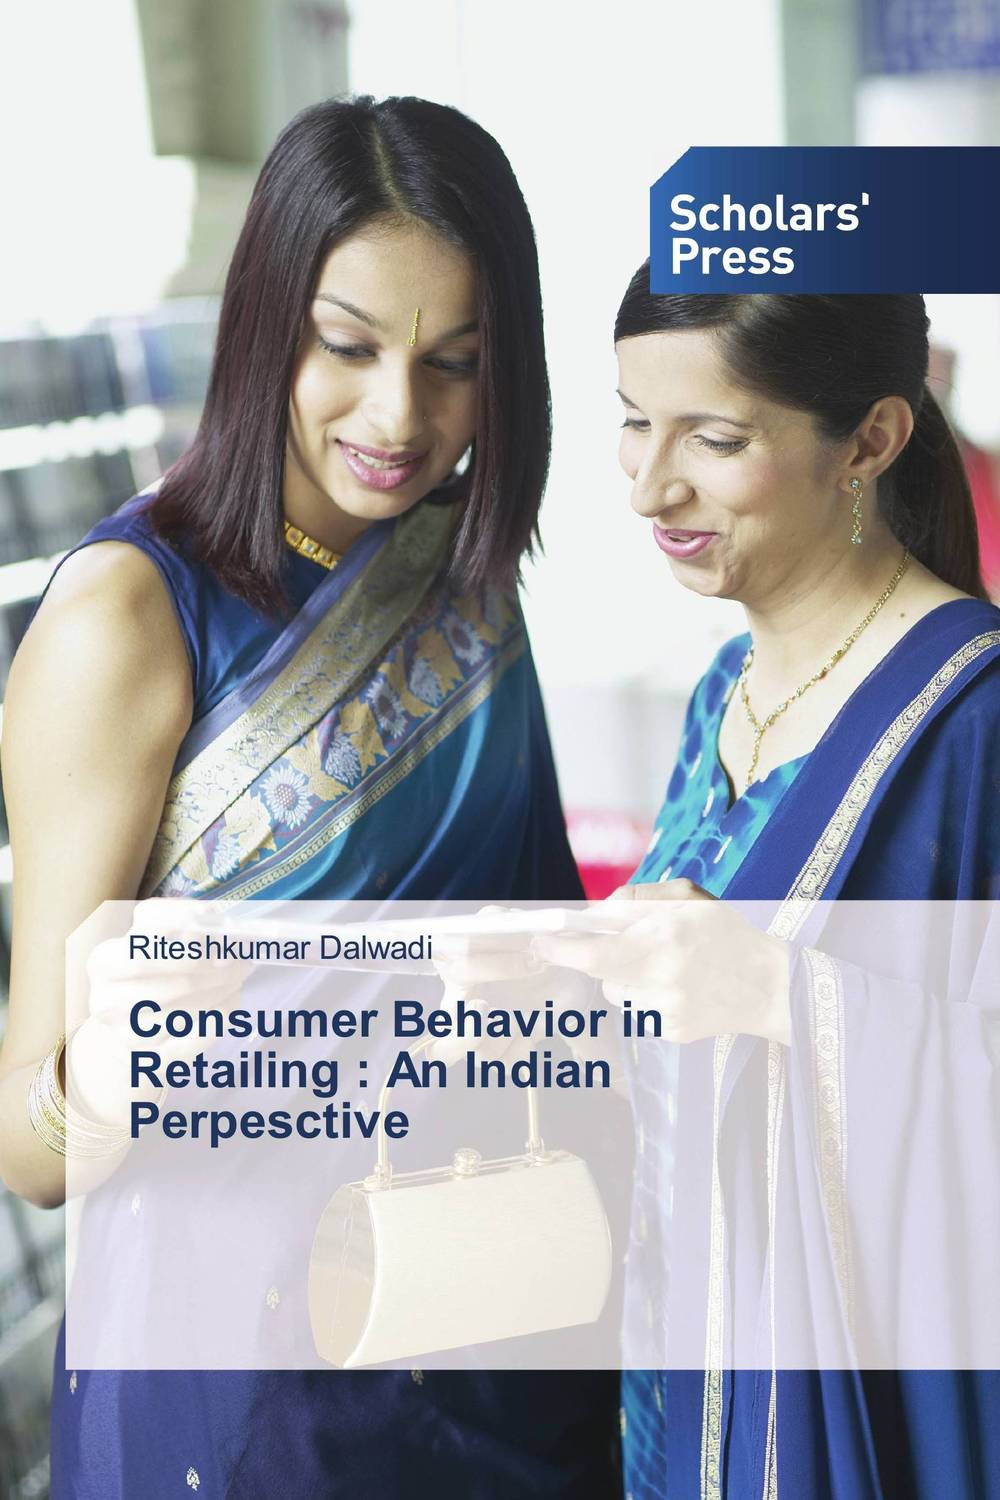 где купить  Consumer Behavior in Retailing : An Indian Perpesctive  по лучшей цене